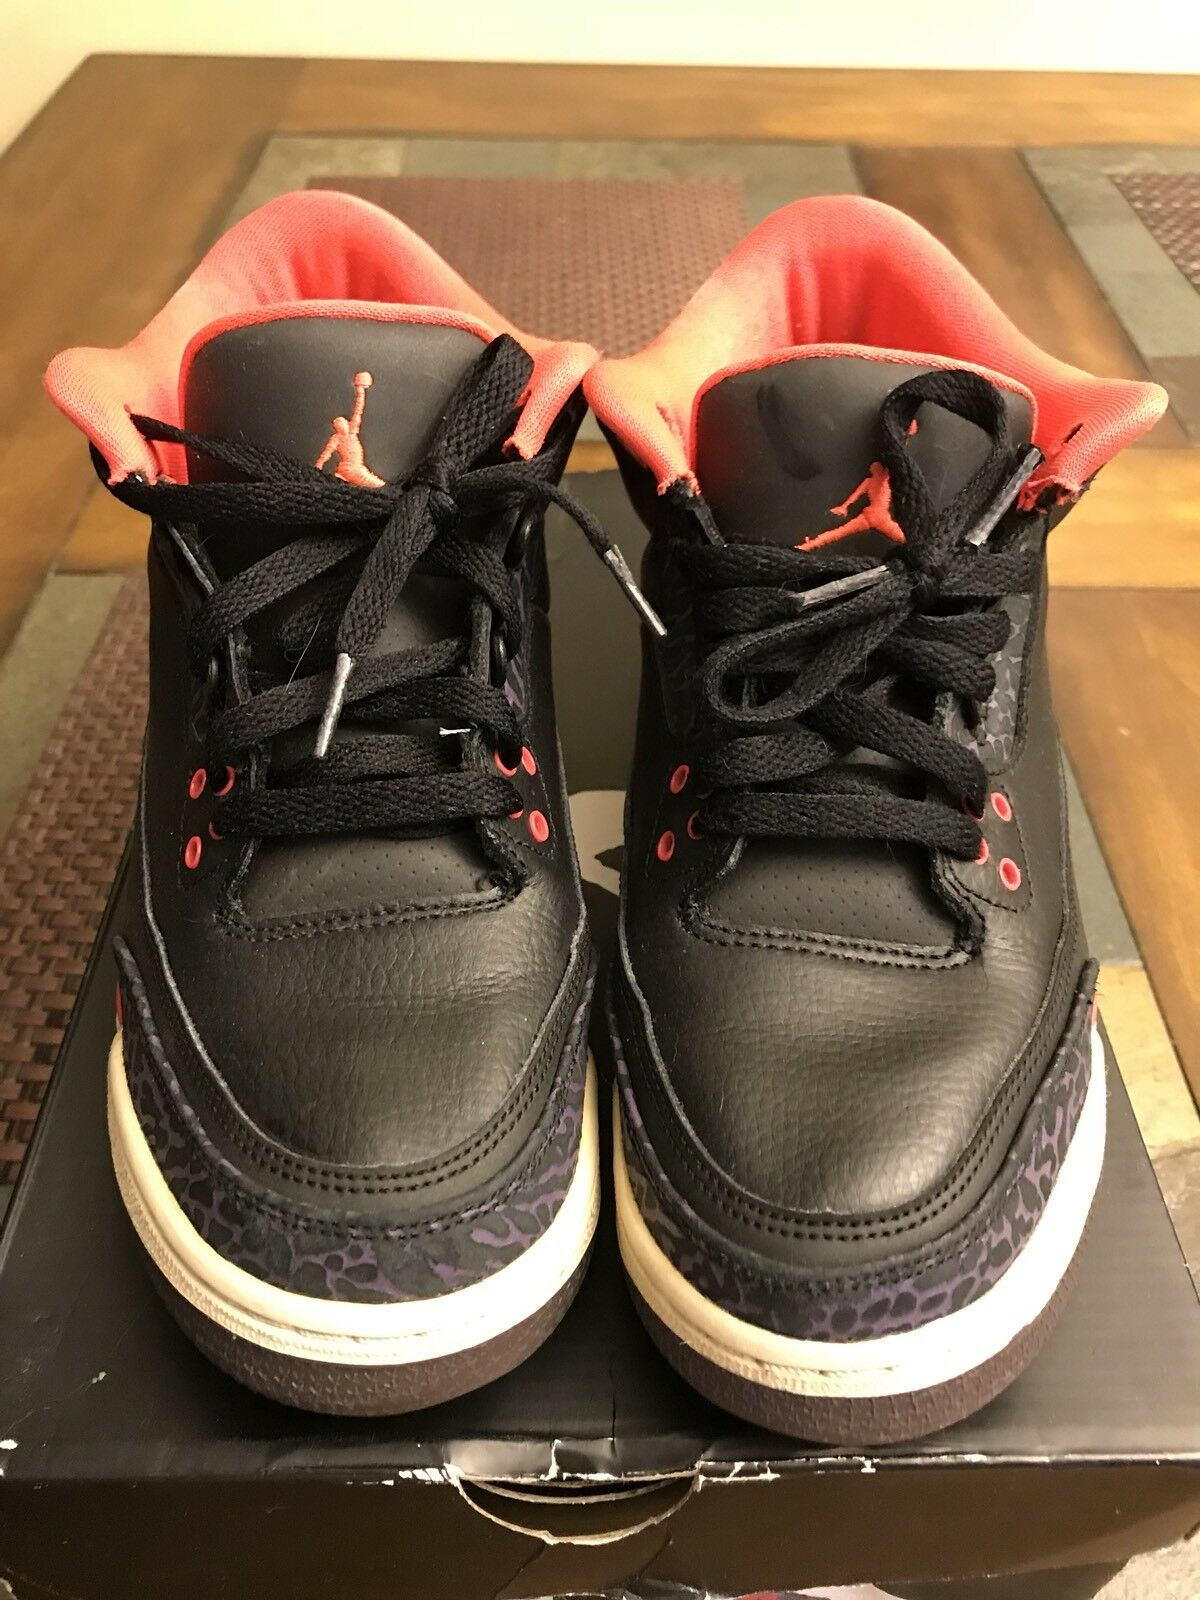 Nike Air Jordan III 3 Retro Black/Crimson-Canyon Purple-Violet 136064-005 SZ 7y